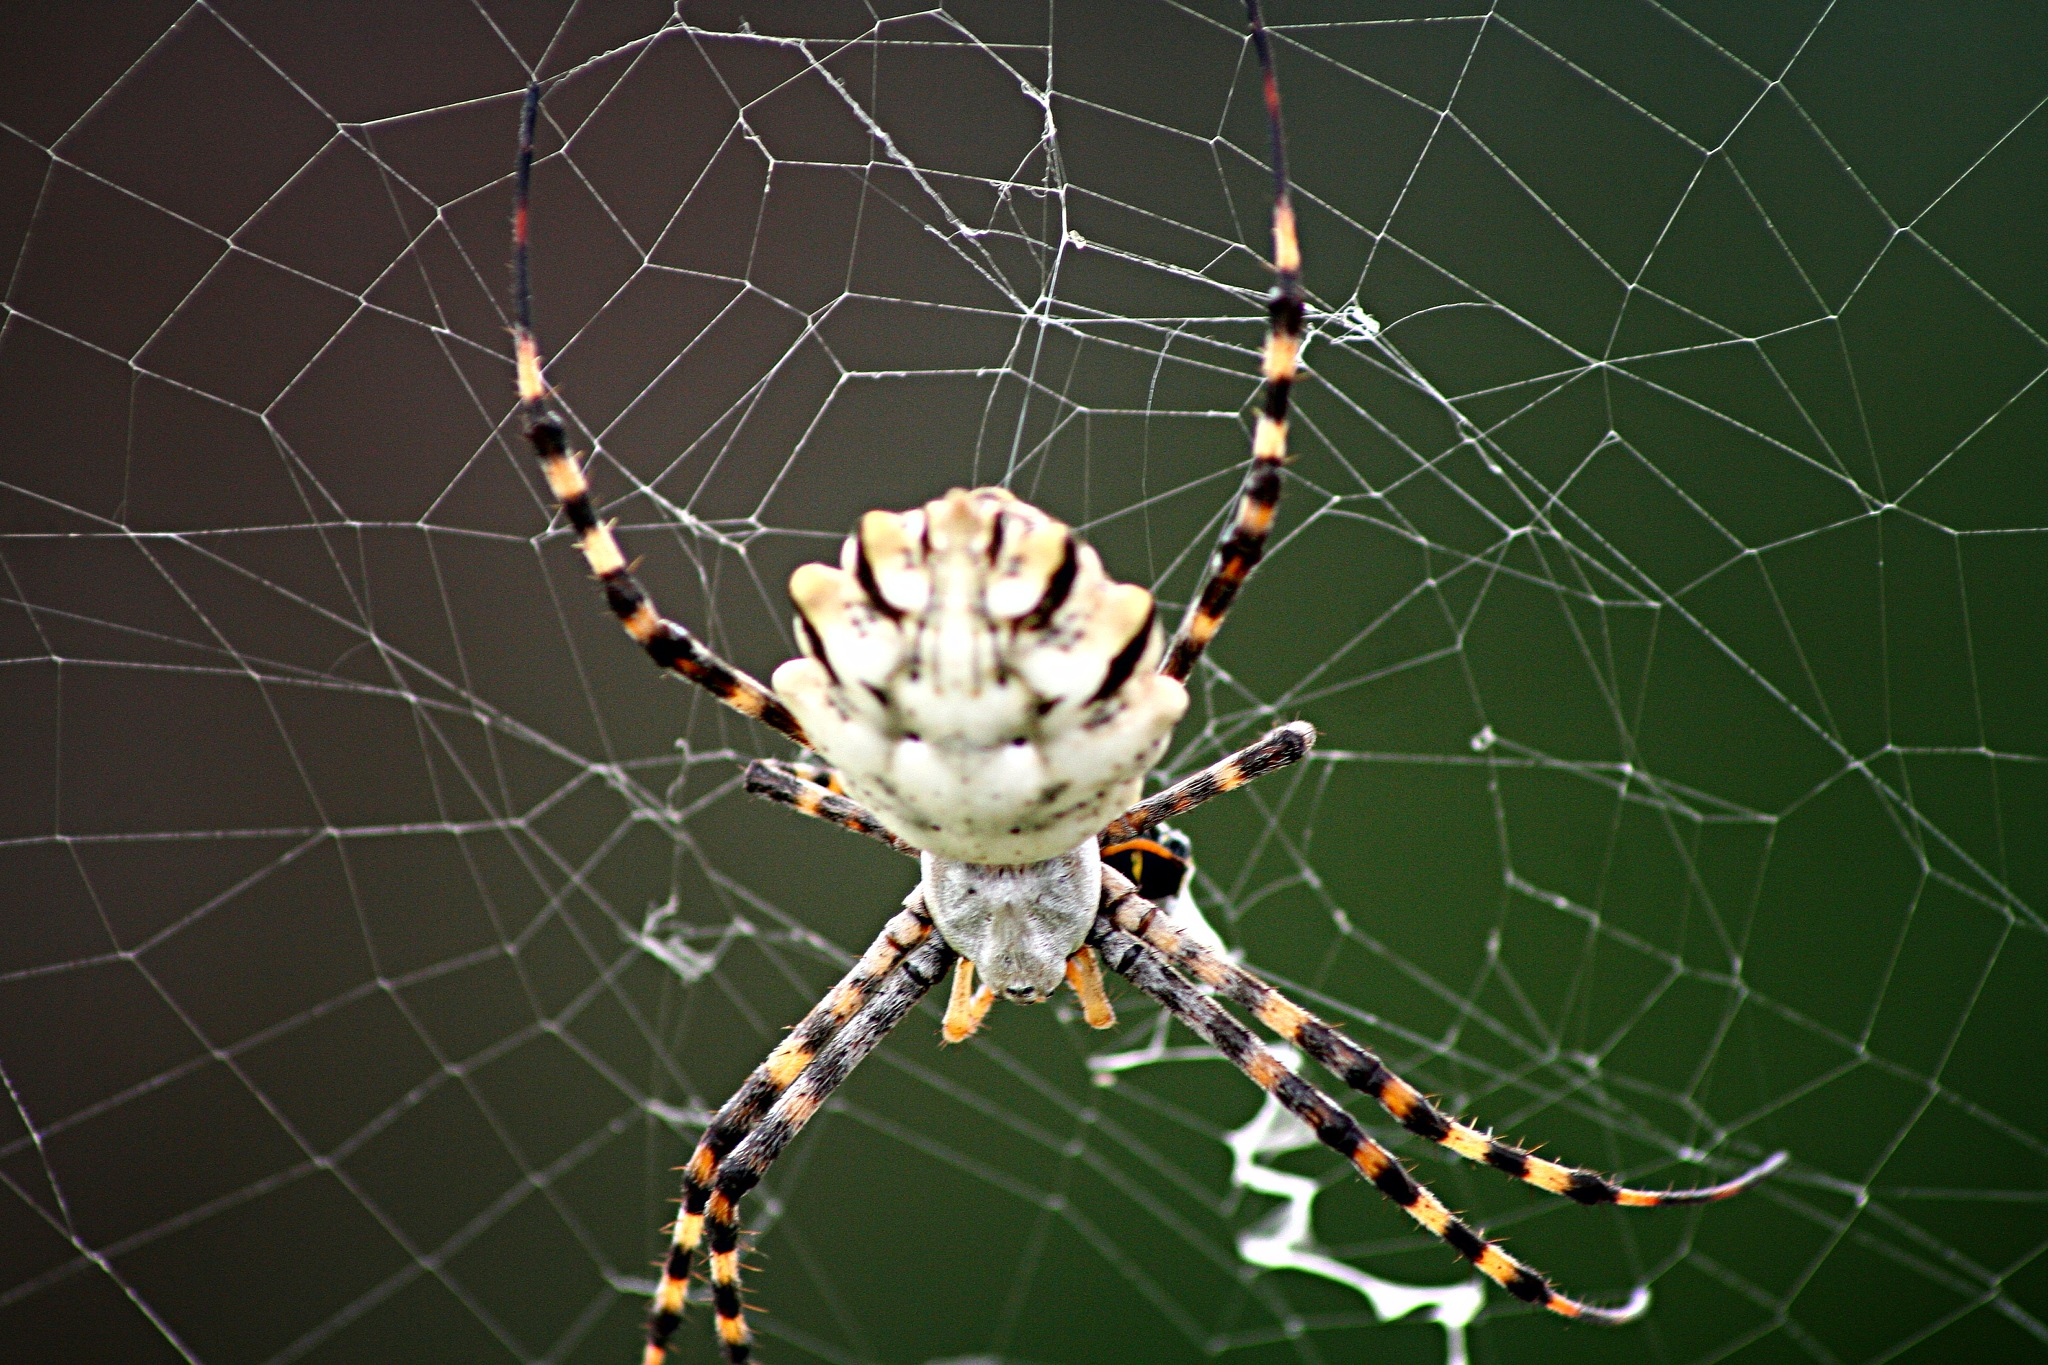 Spider by Johnny Galloso